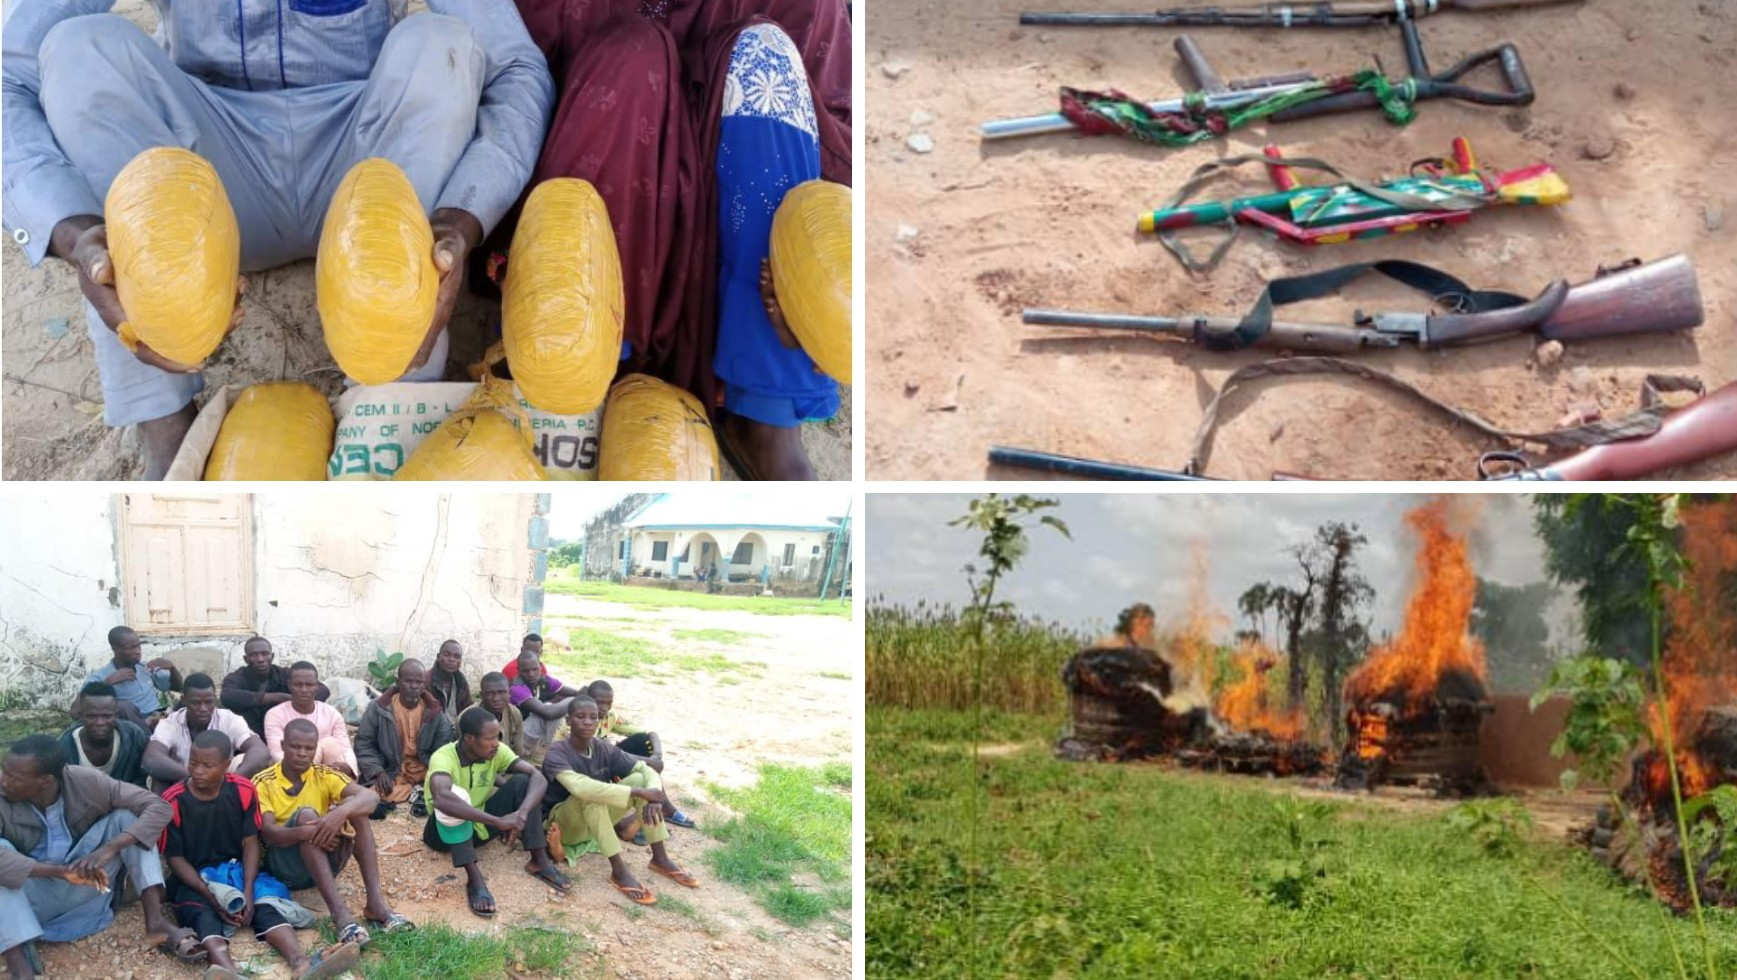 Troops neutralizes bandits operation, rescue kidnapped victims, recovers arms in north west region